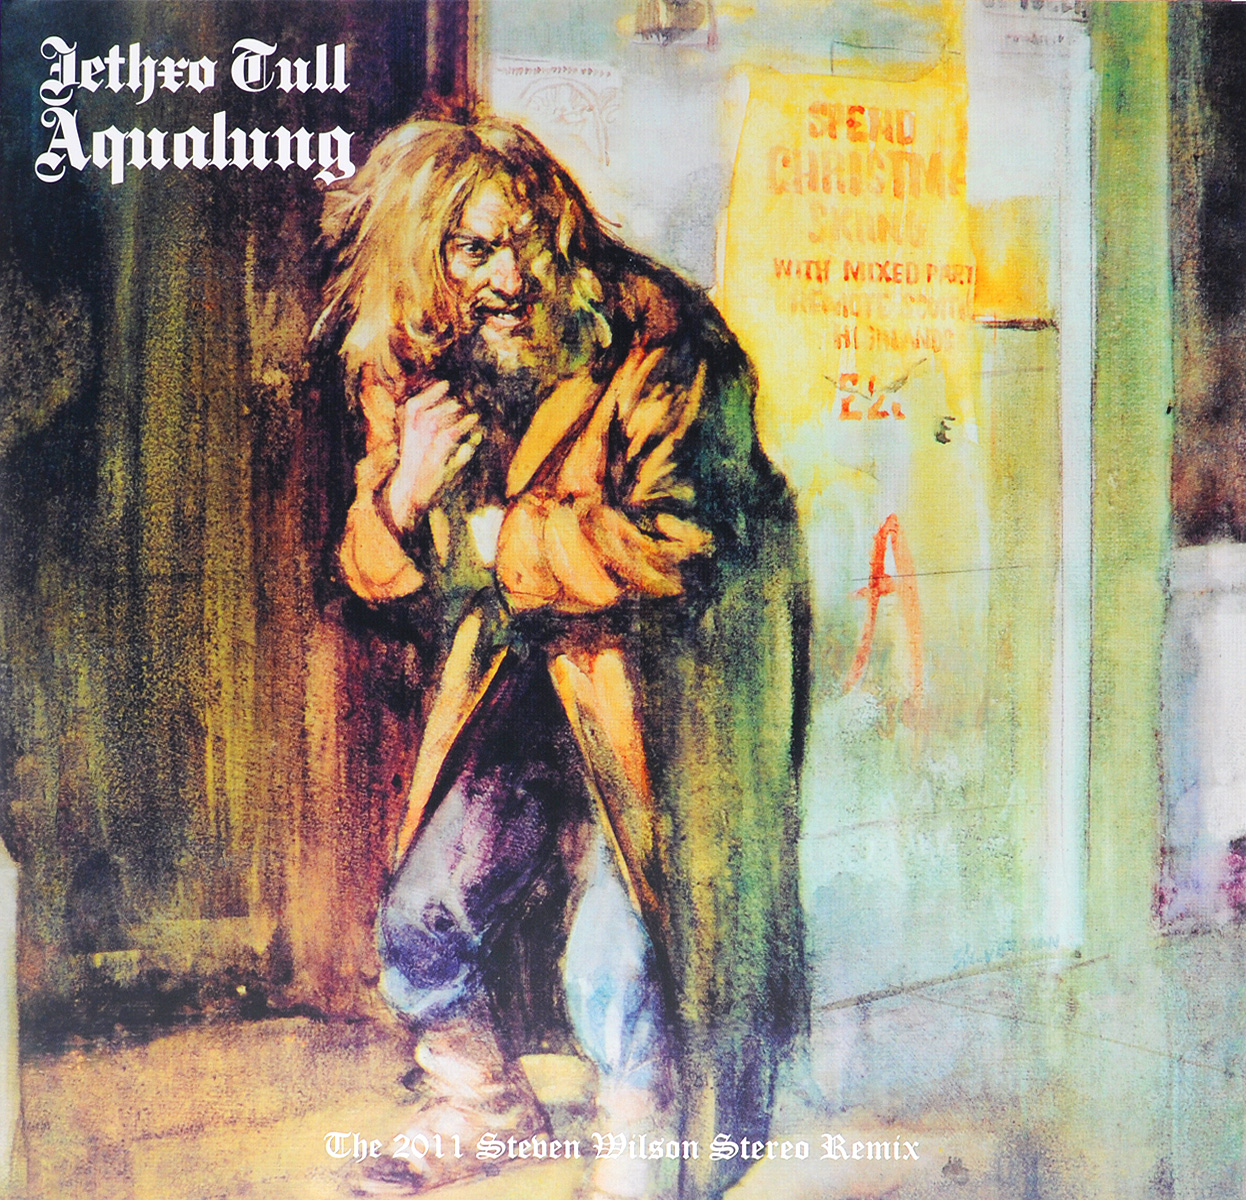 Jethro Tull Jethro Tull. Aqualung (LP) jethro tull this was lp